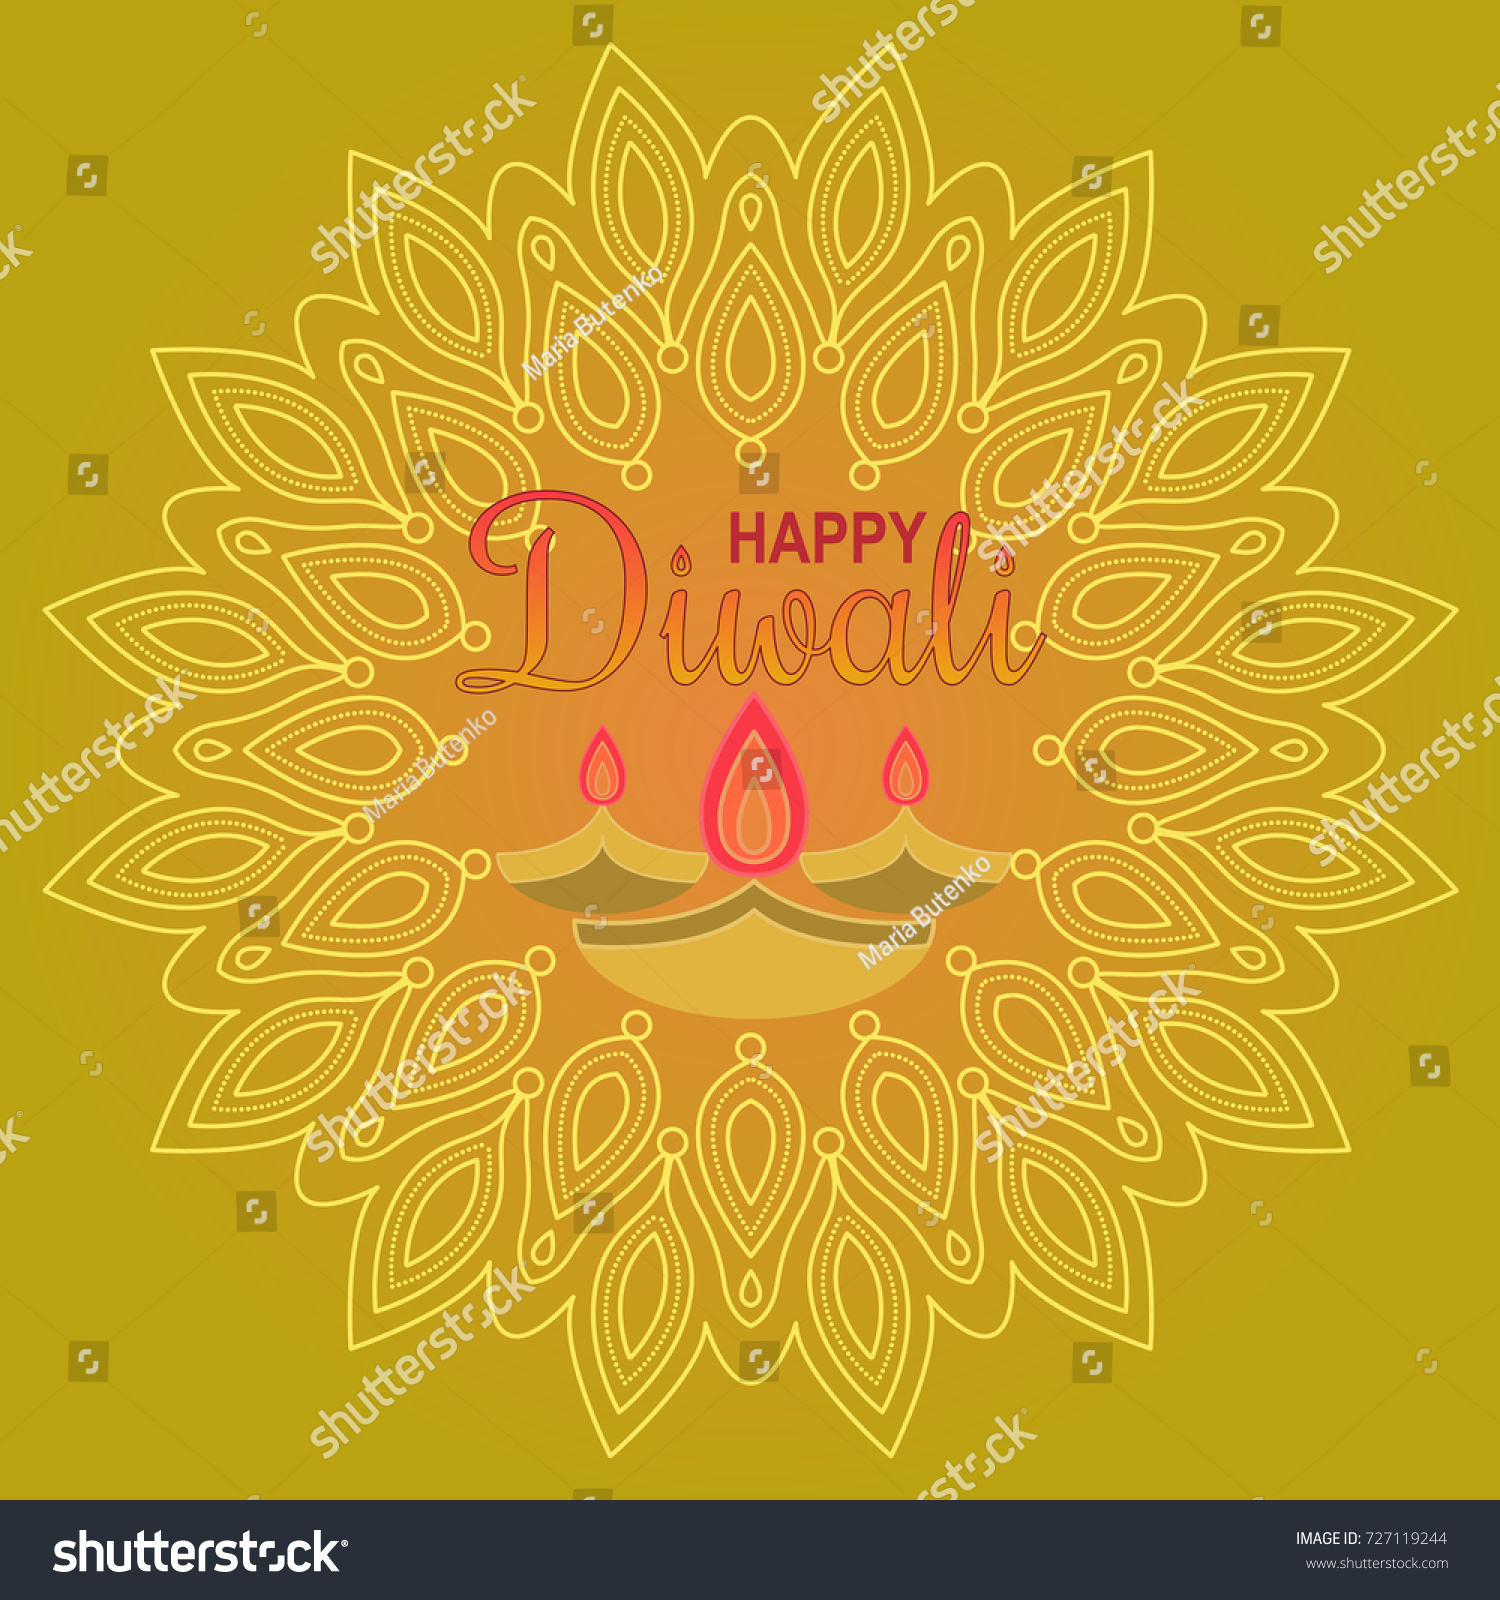 Beautiful greeting card festival diwali happy stock vector beautiful greeting card for festival diwali happy diwali festival background illustration card design for kristyandbryce Images